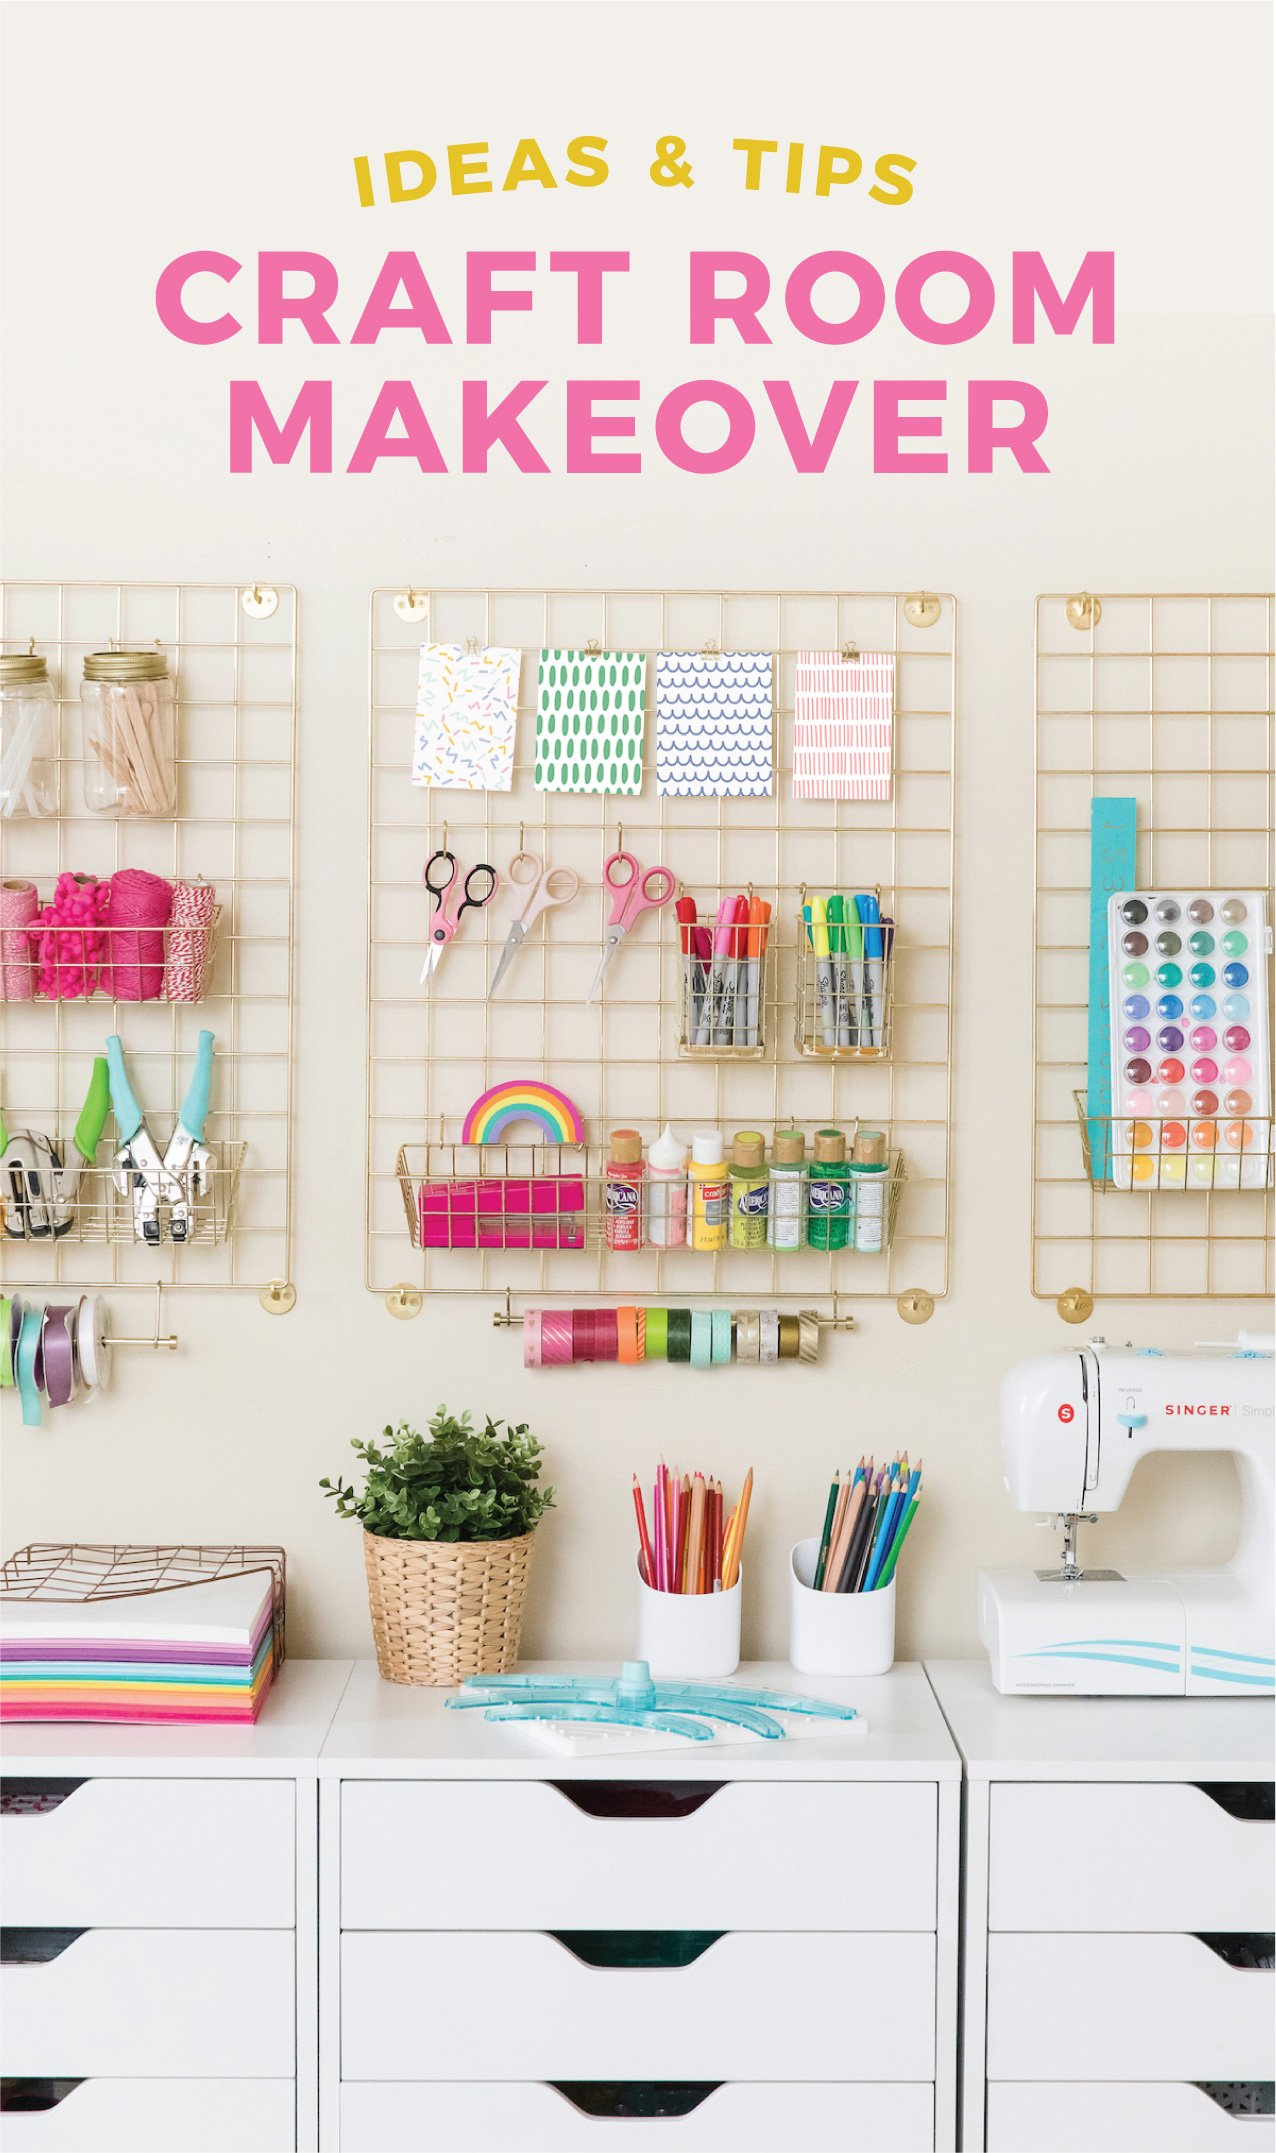 My new craft room makeover is finally finished! Going over craft room storage, organization, and decor ideas to help create an inspiring, crafty space! #craftroom #craft #office #storage #organization